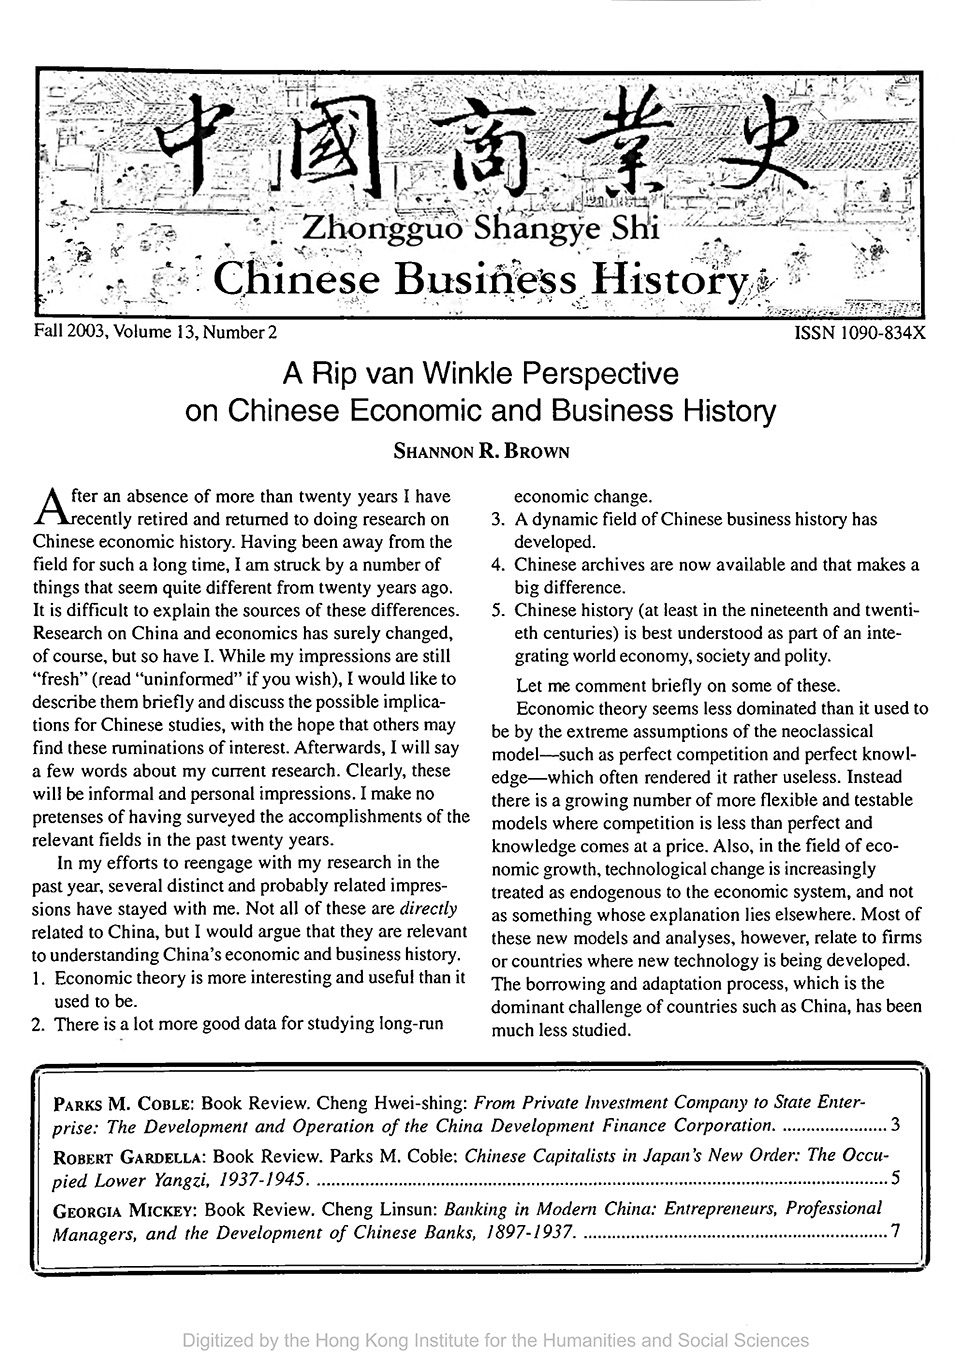 Cover of Chinese Business History Journal Volume 13, Number 2